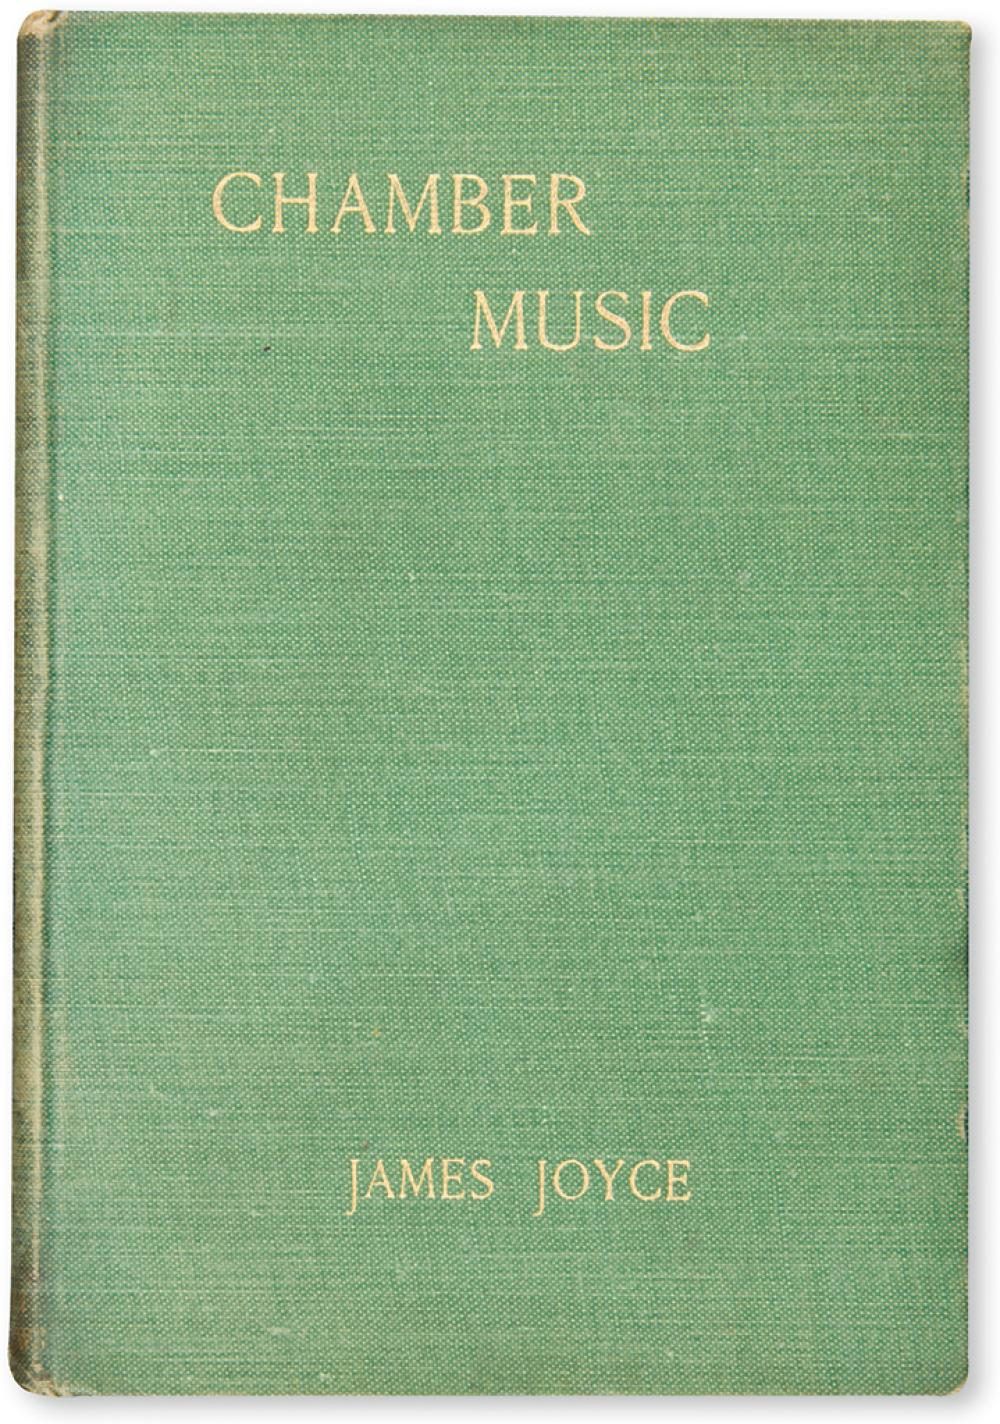 JOYCE, JAMES. Chamber Music.